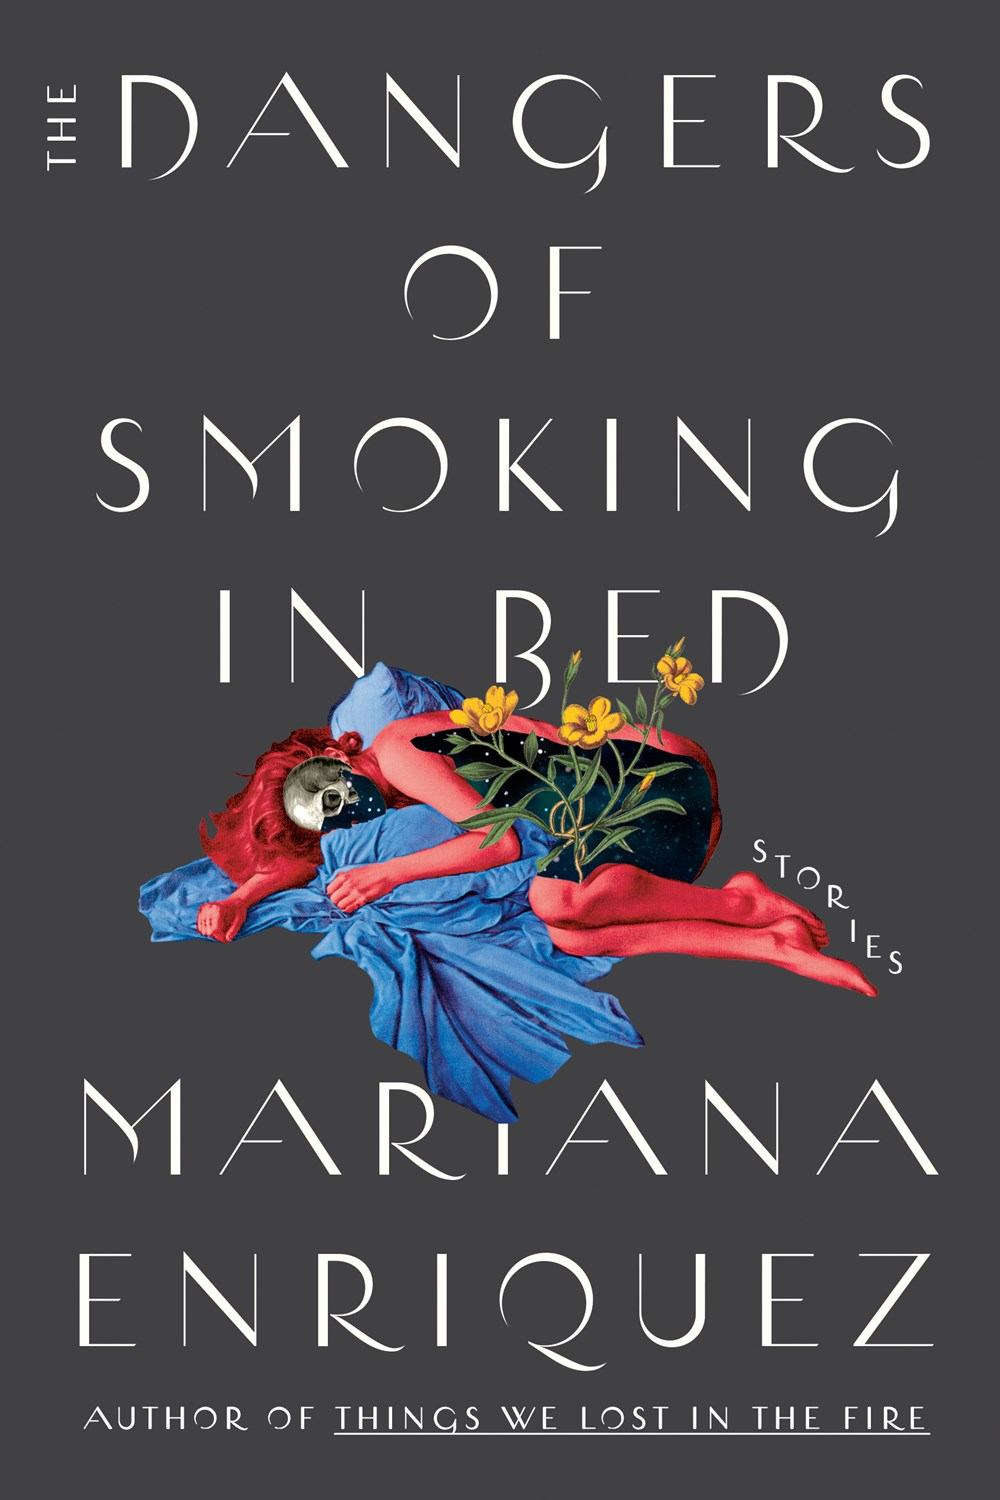 The Dangers of Smoking in Bed by Mariana Enriquez, Megan McDowell (Trans.)